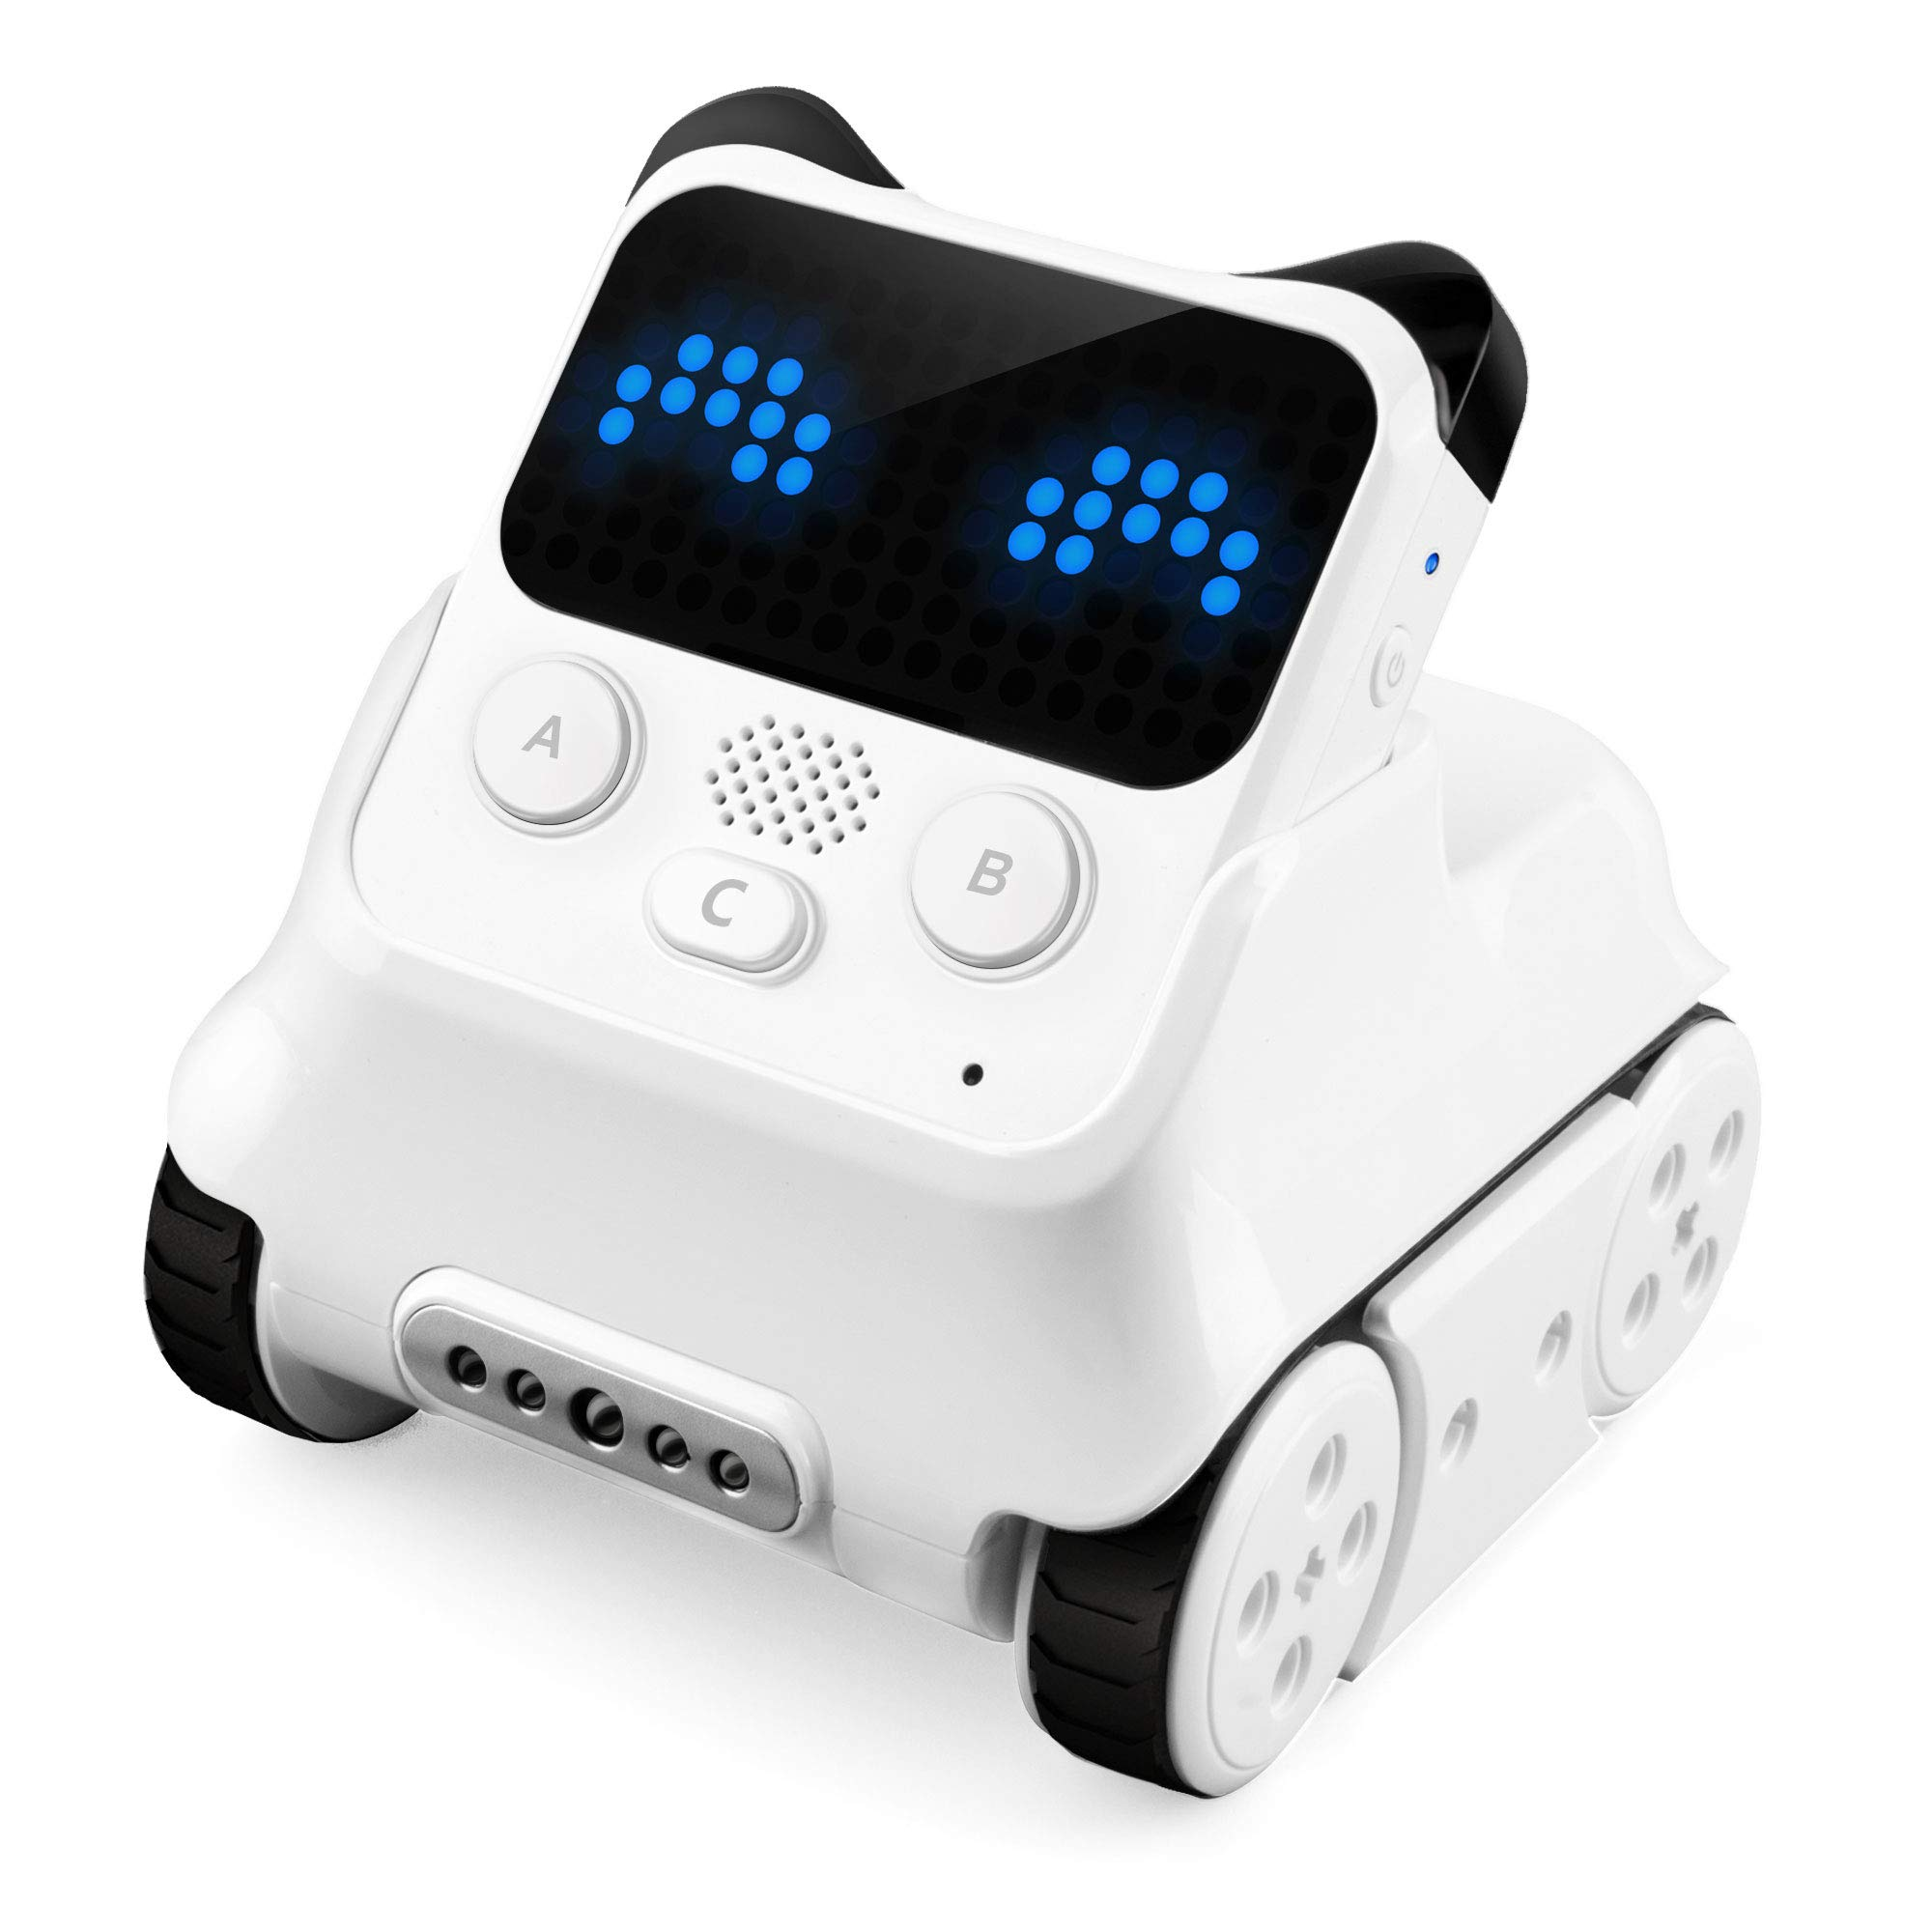 Makeblock Codey Rocky Programmable Robot, Fun Toys Gift to Learn AI, Python, Remote Control, Available for Windows, Mac OS, Chromebook, iOS, and Android, STEM Education for Kids Ages 6+. by Makeblock